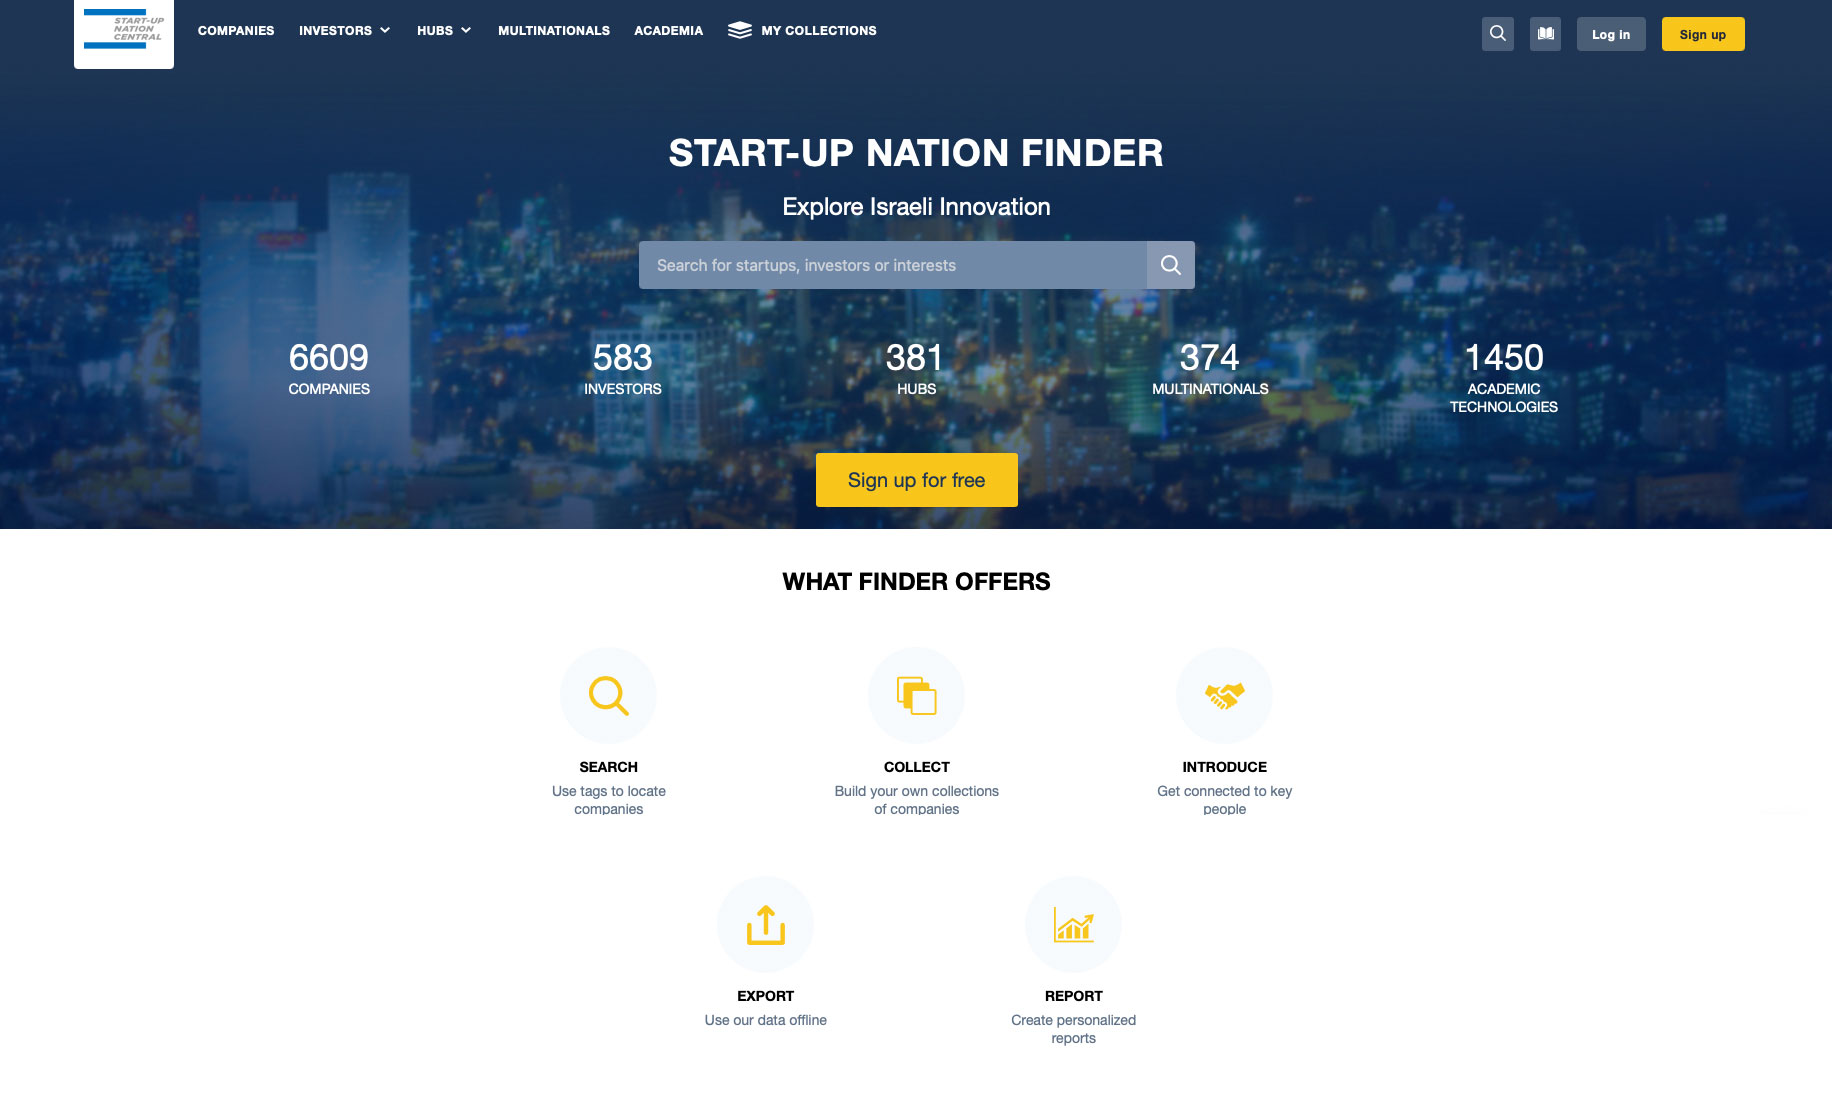 Start-up Nation Finder